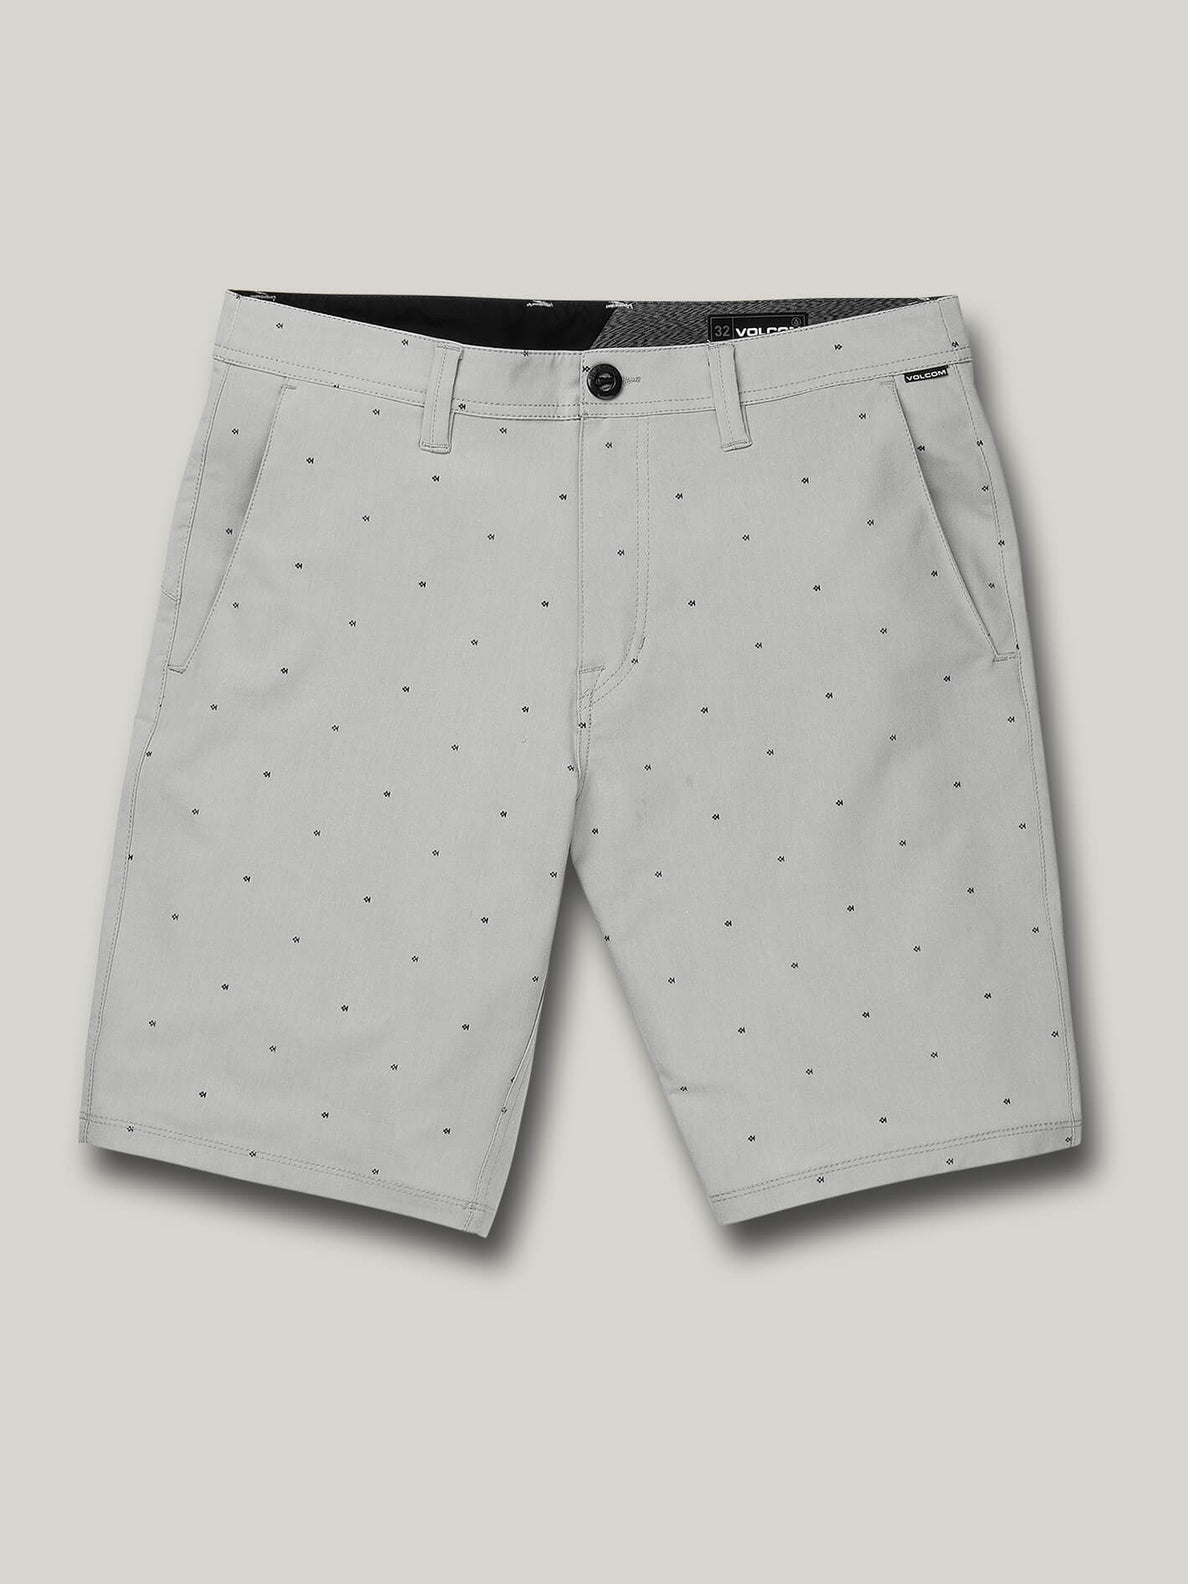 Frickin Surf N' Turf Mix Hybrid Shorts - Tower Grey (A3212003_TWR) [F]